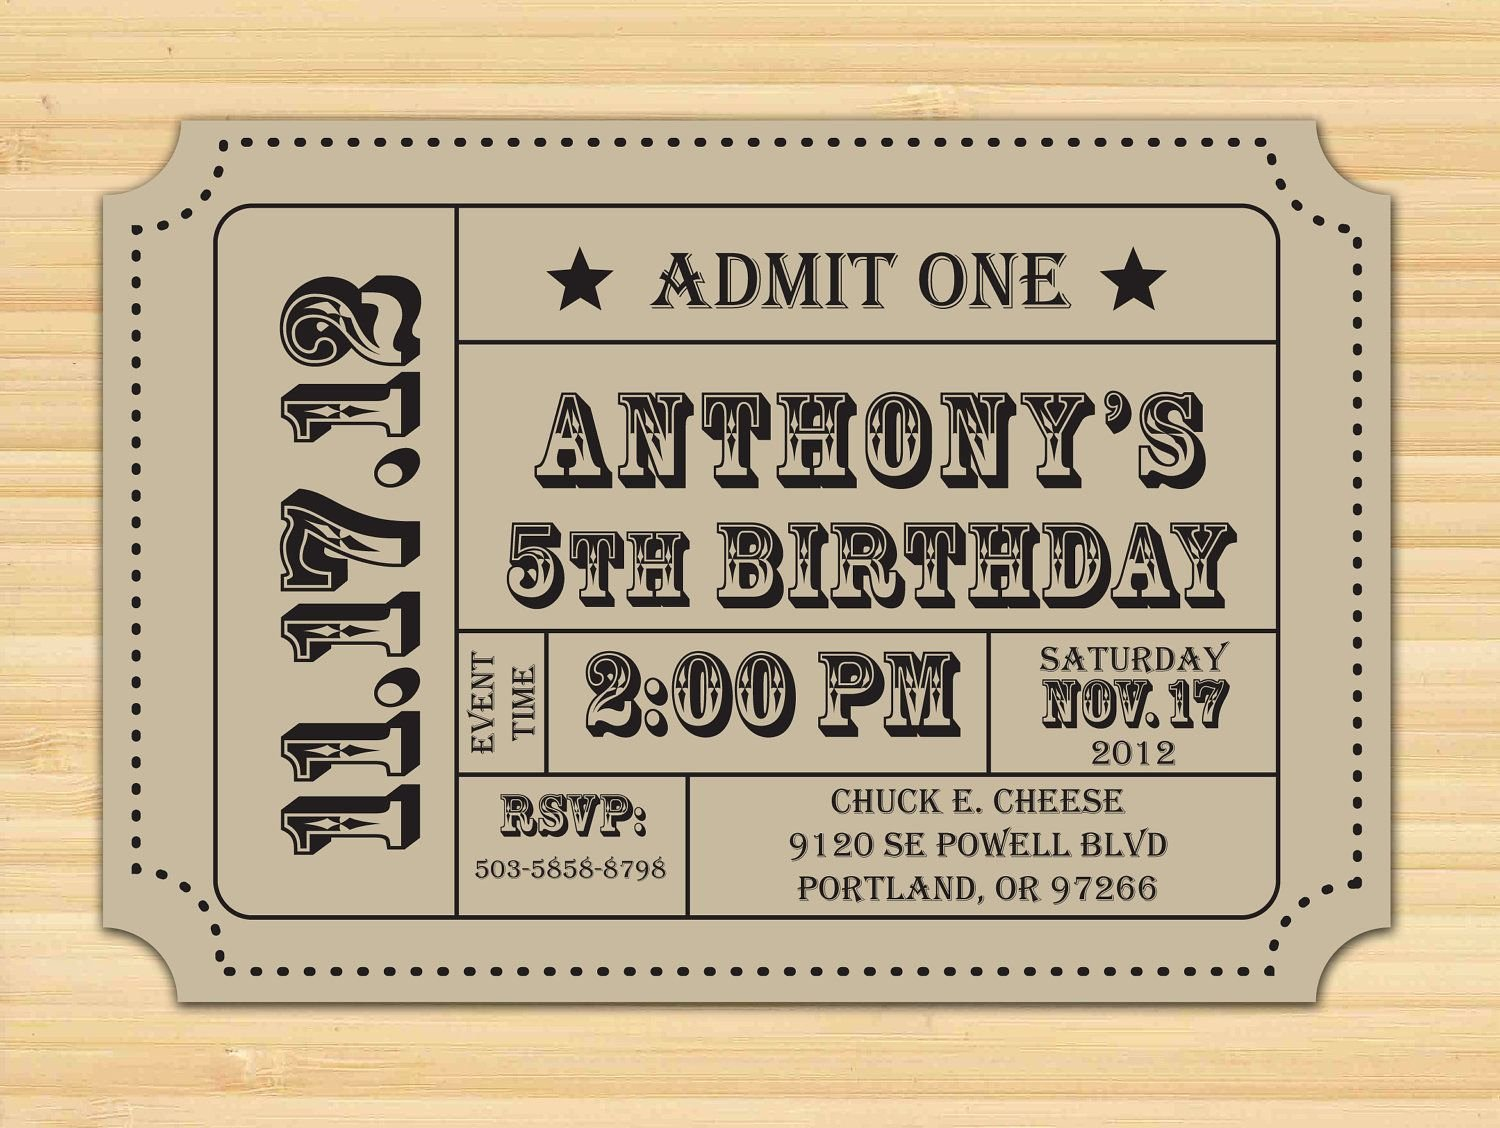 Free Printable Ticket Stub Template Elegant Carnival Ticket Invitation Ticket Stub Editable